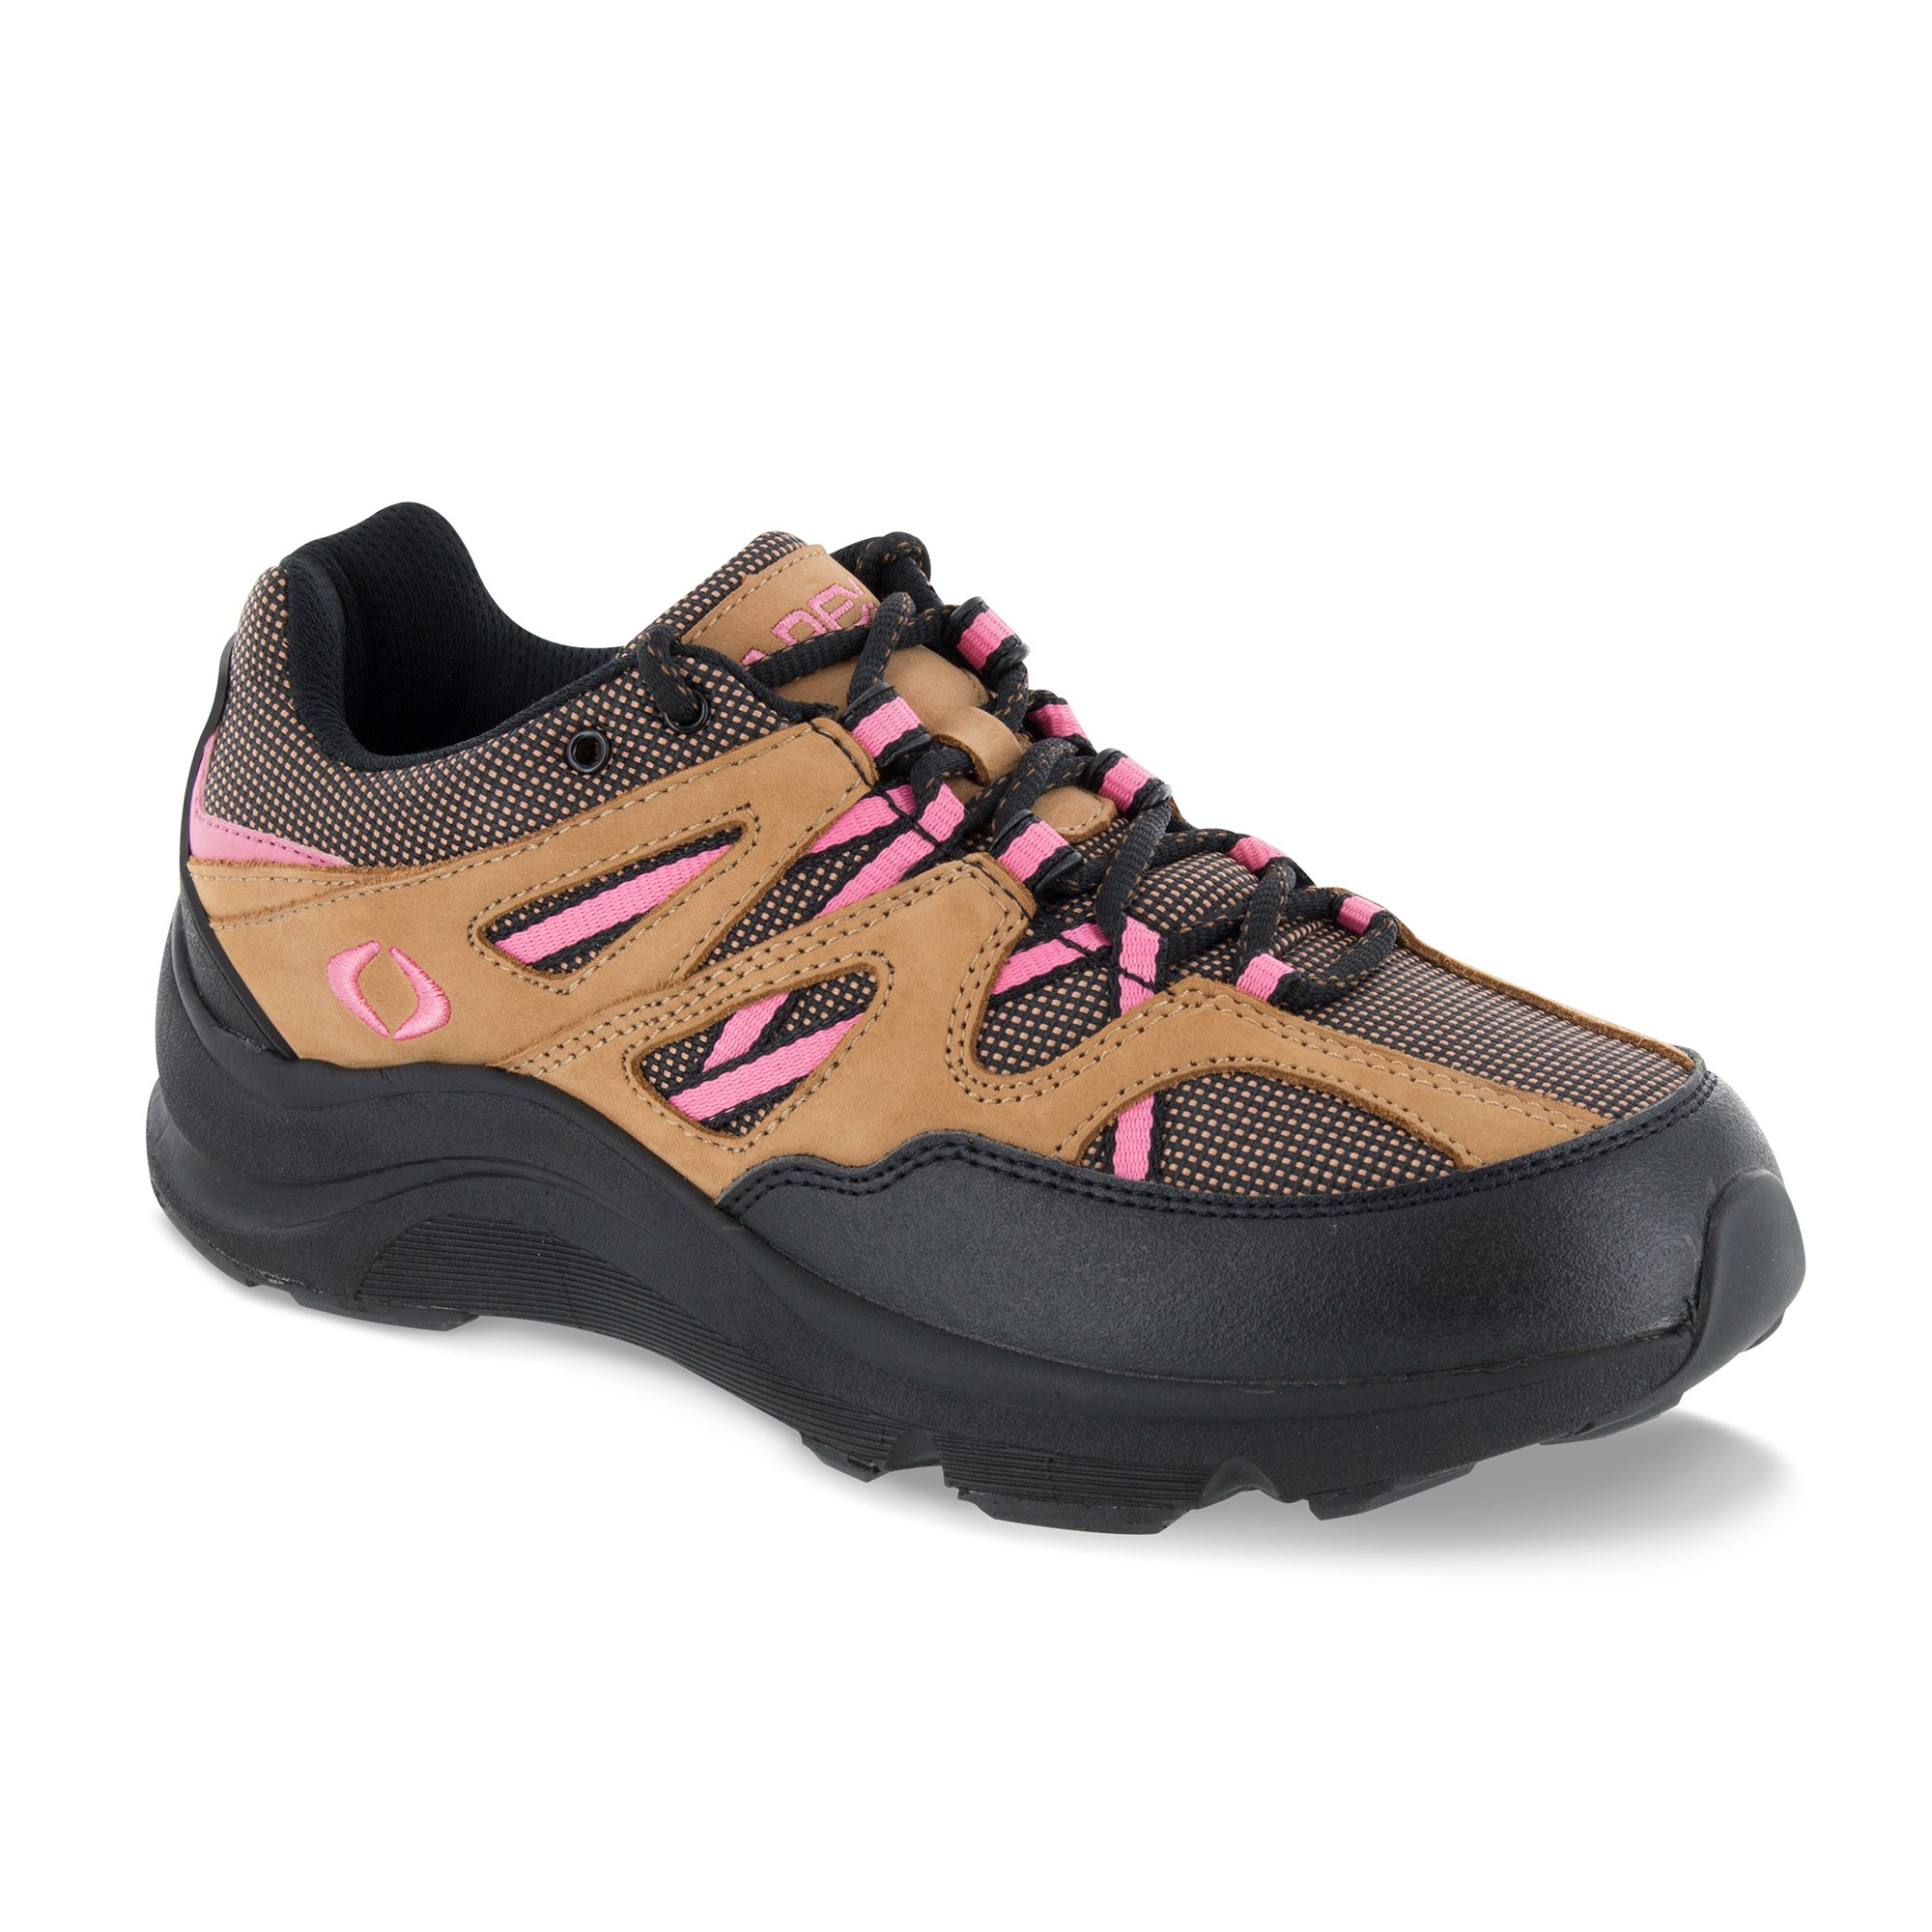 Apex Women's Sierra Trail Runner Hiking Shoe Sneaker, Brown/Pink, 8.5 Wide US by Apex